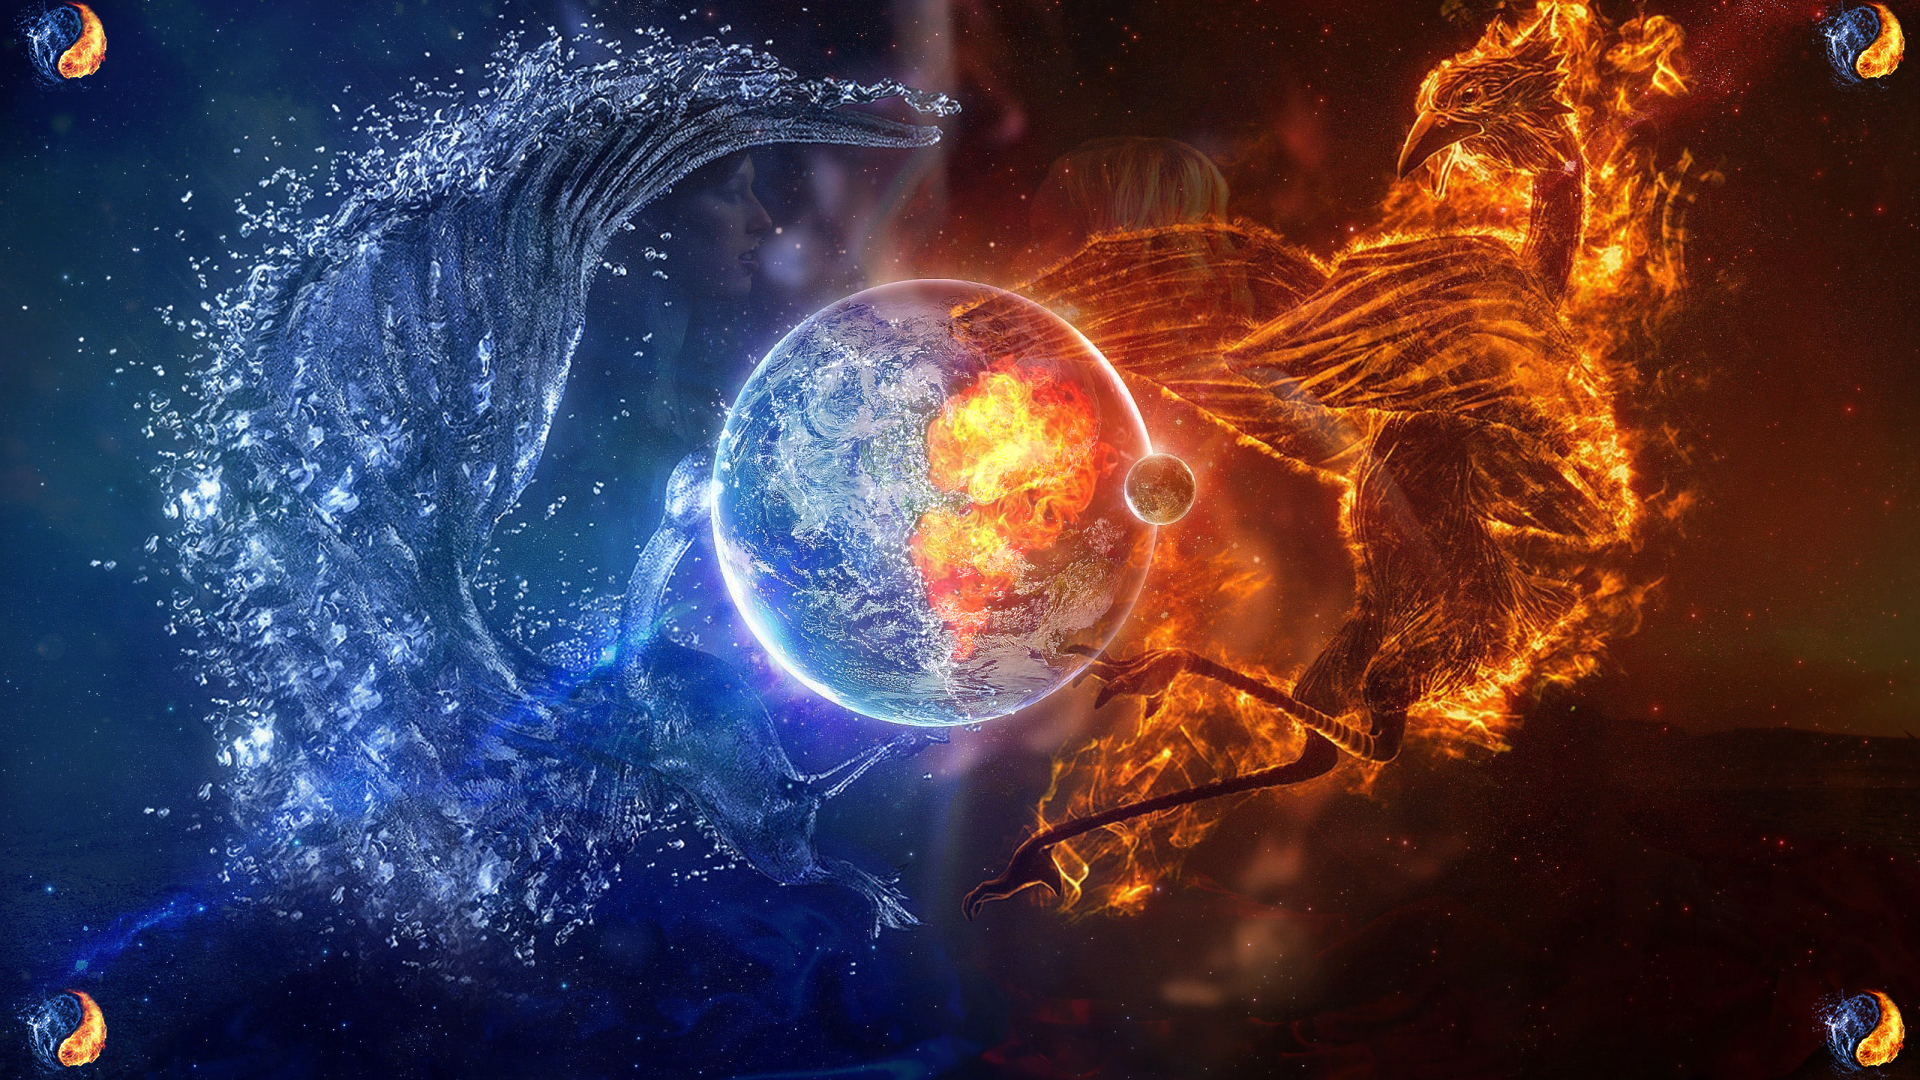 Drawn planets fire and ice On Wallpapers Pinterest And rider